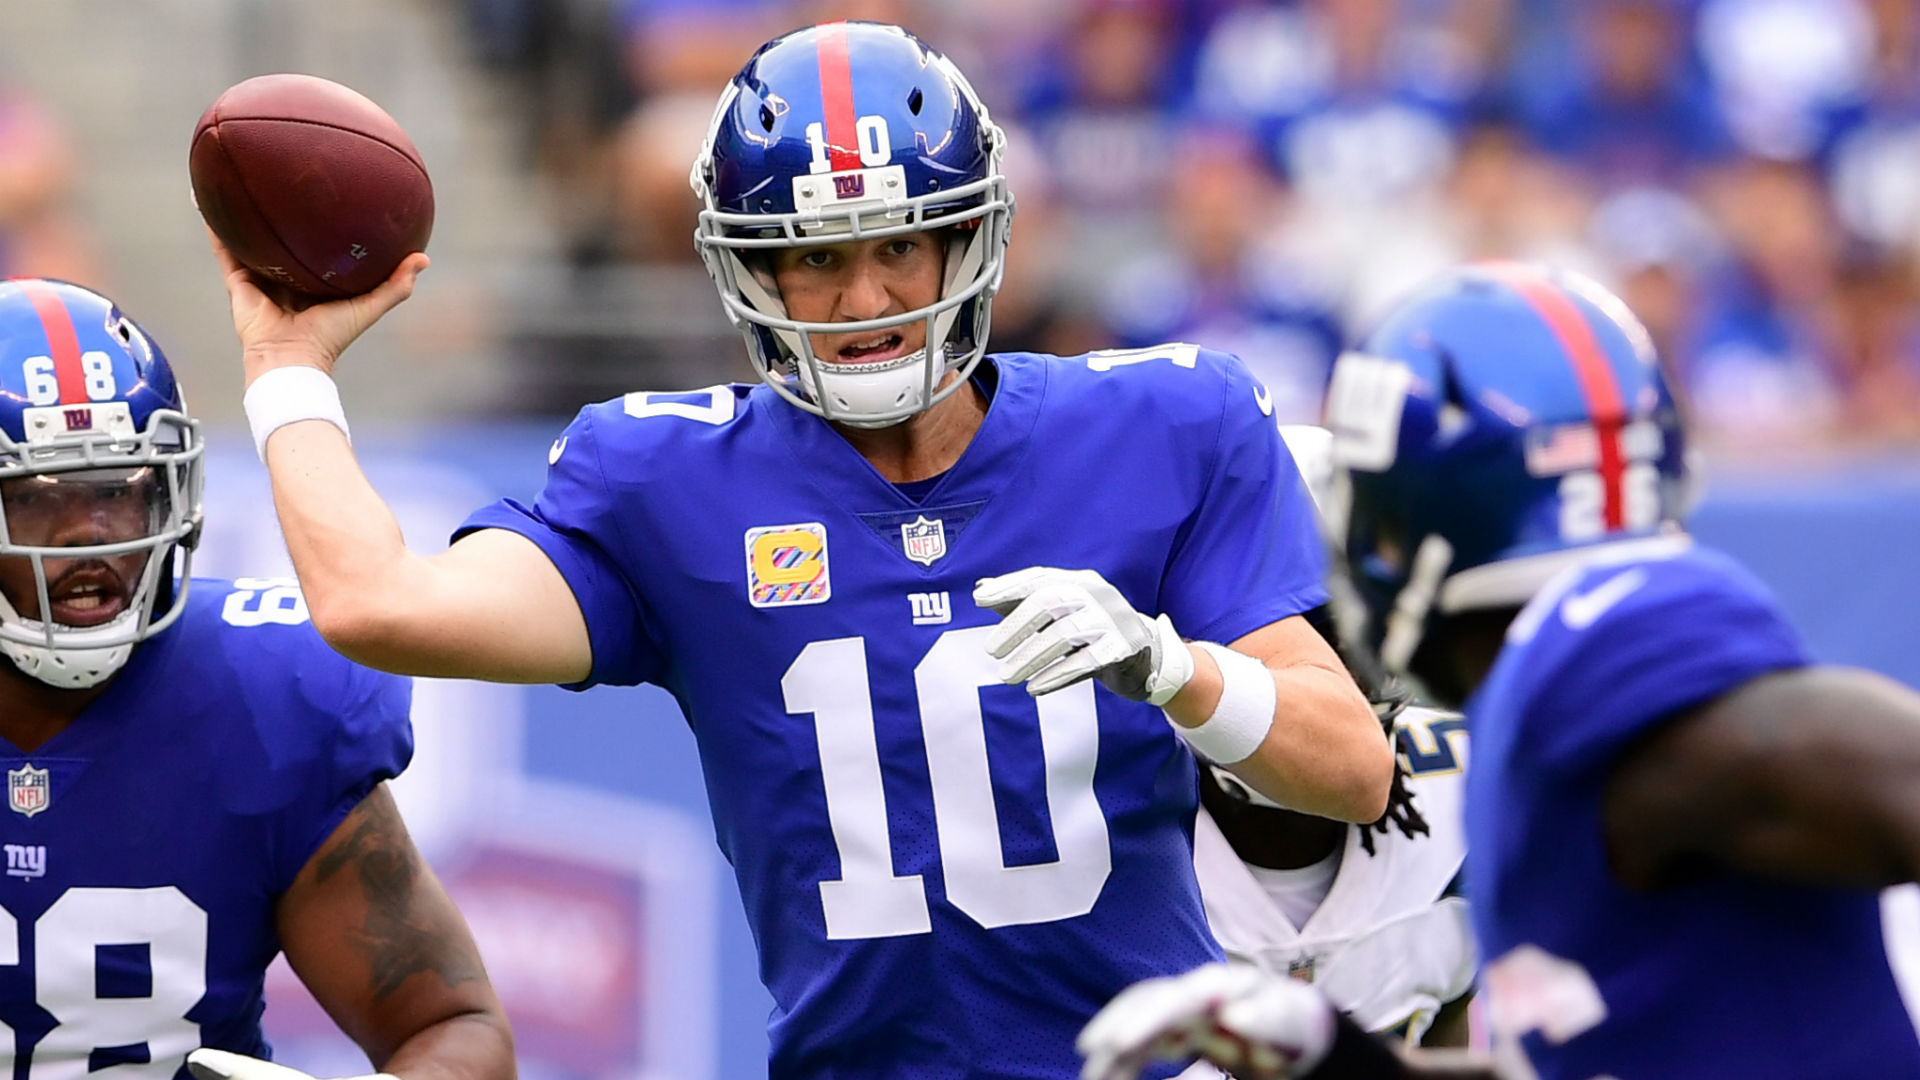 Giants vs. 49ers: Listing the good and the bad from Week 10